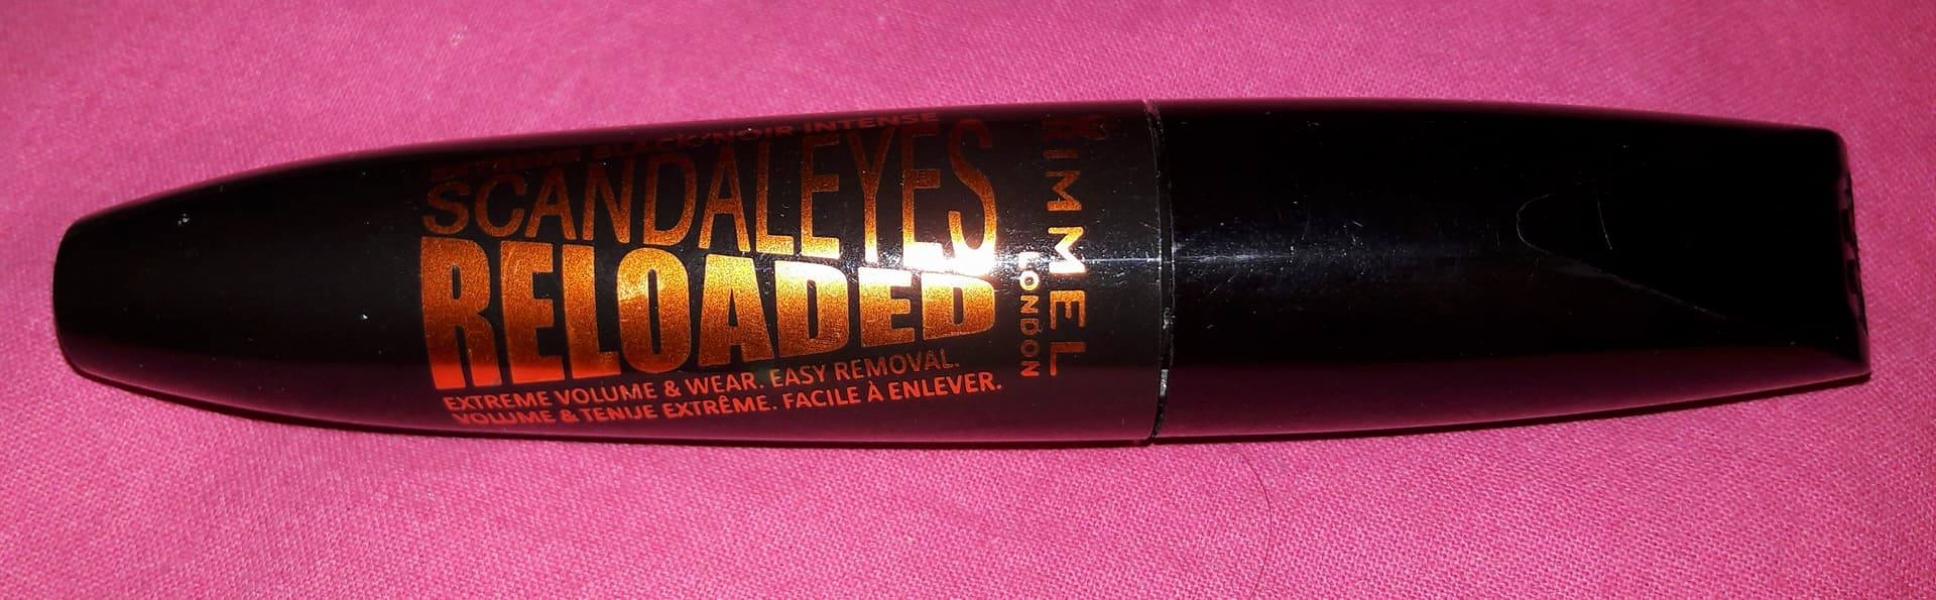 Swatch MASCARA SCANDALEYES RELOADED, Rimmel london